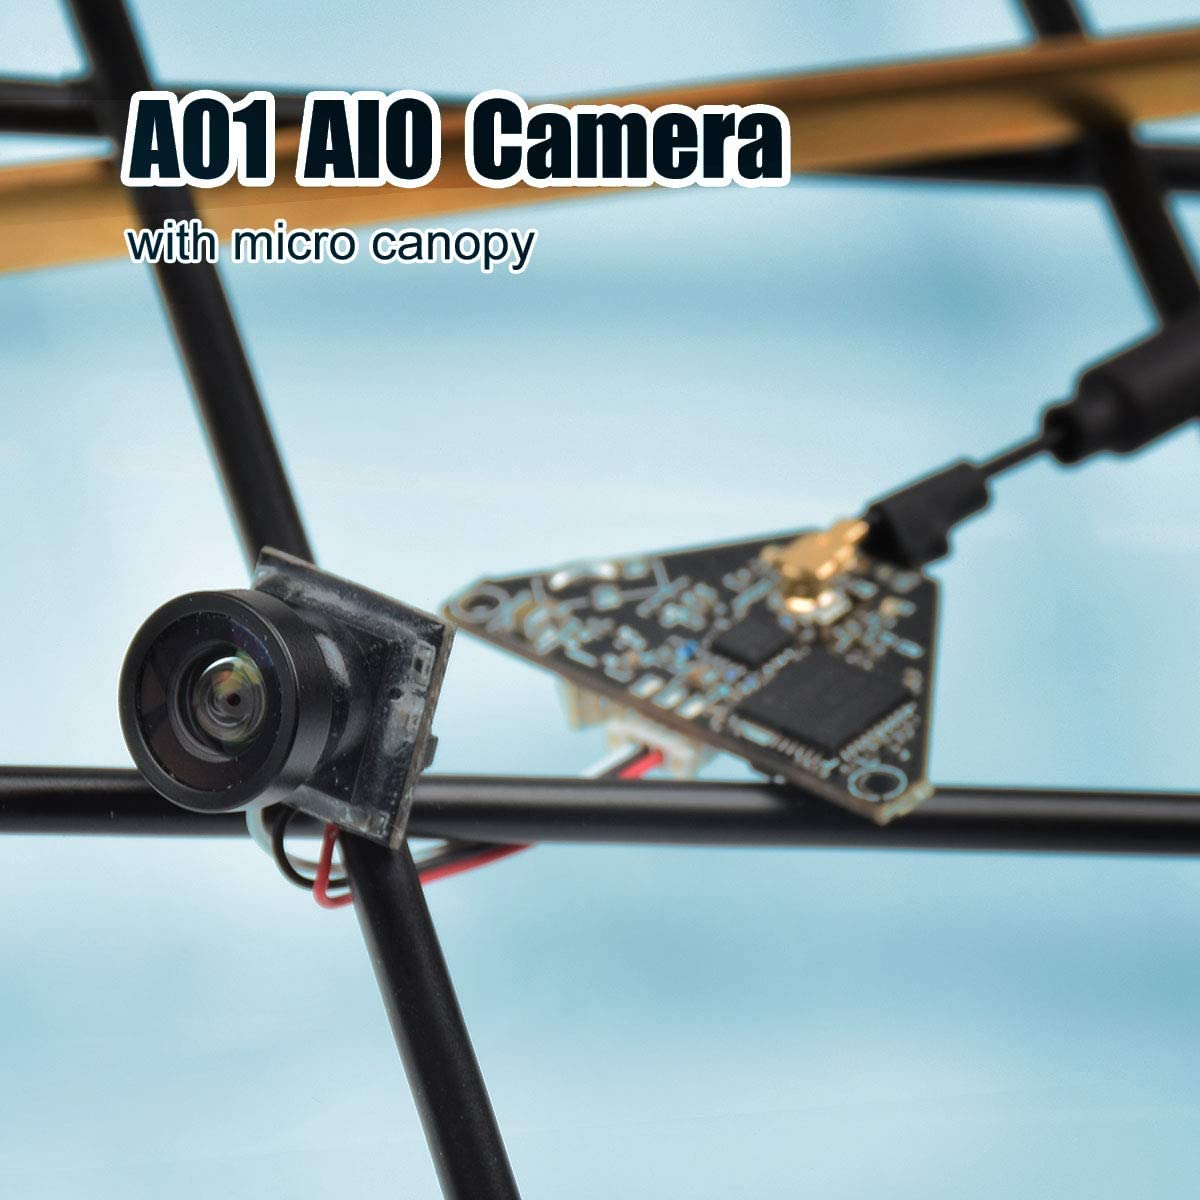 BETAFPV A01 AIO Camera 5.8GHz VTX Transmitter 800TVL NTSC//PAL OSD SmartAudio for 2-4S Tiny Whoop Drone Pin-Connected Version